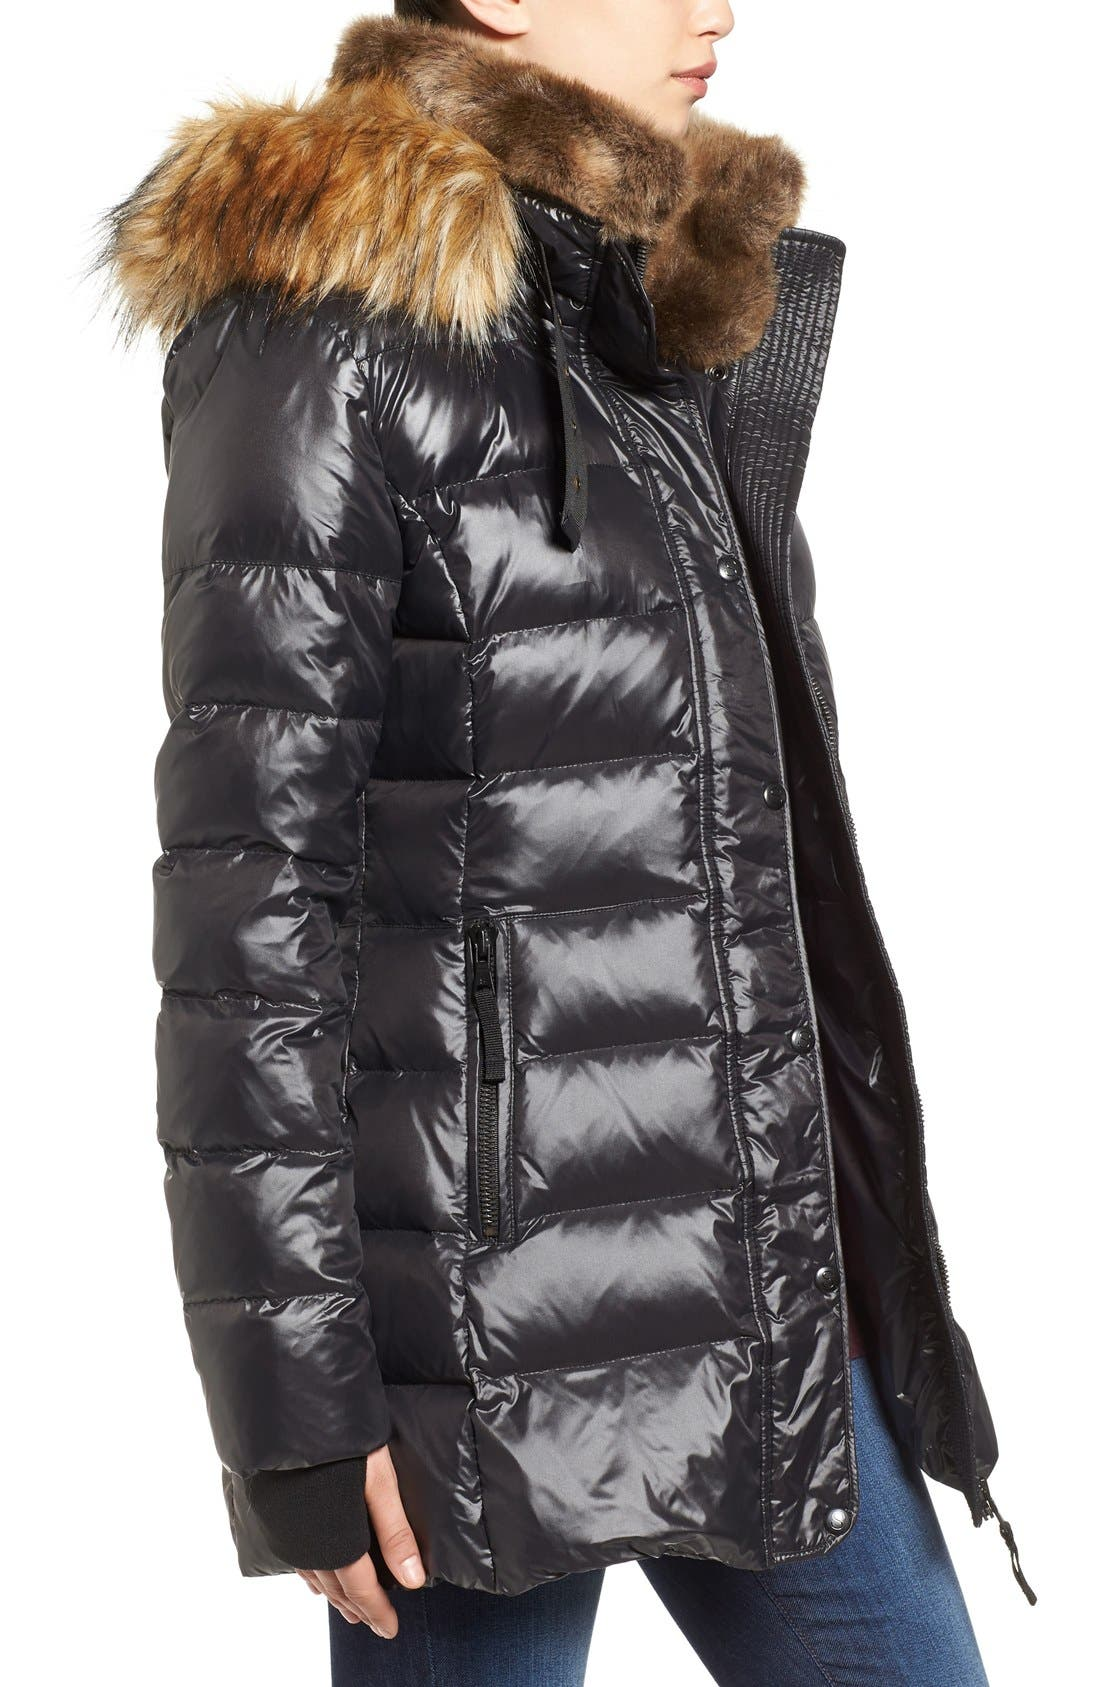 'Chelsea' Gloss Down Jacket with Removable Hood and Faux Fur Trim,                             Alternate thumbnail 5, color,                             002